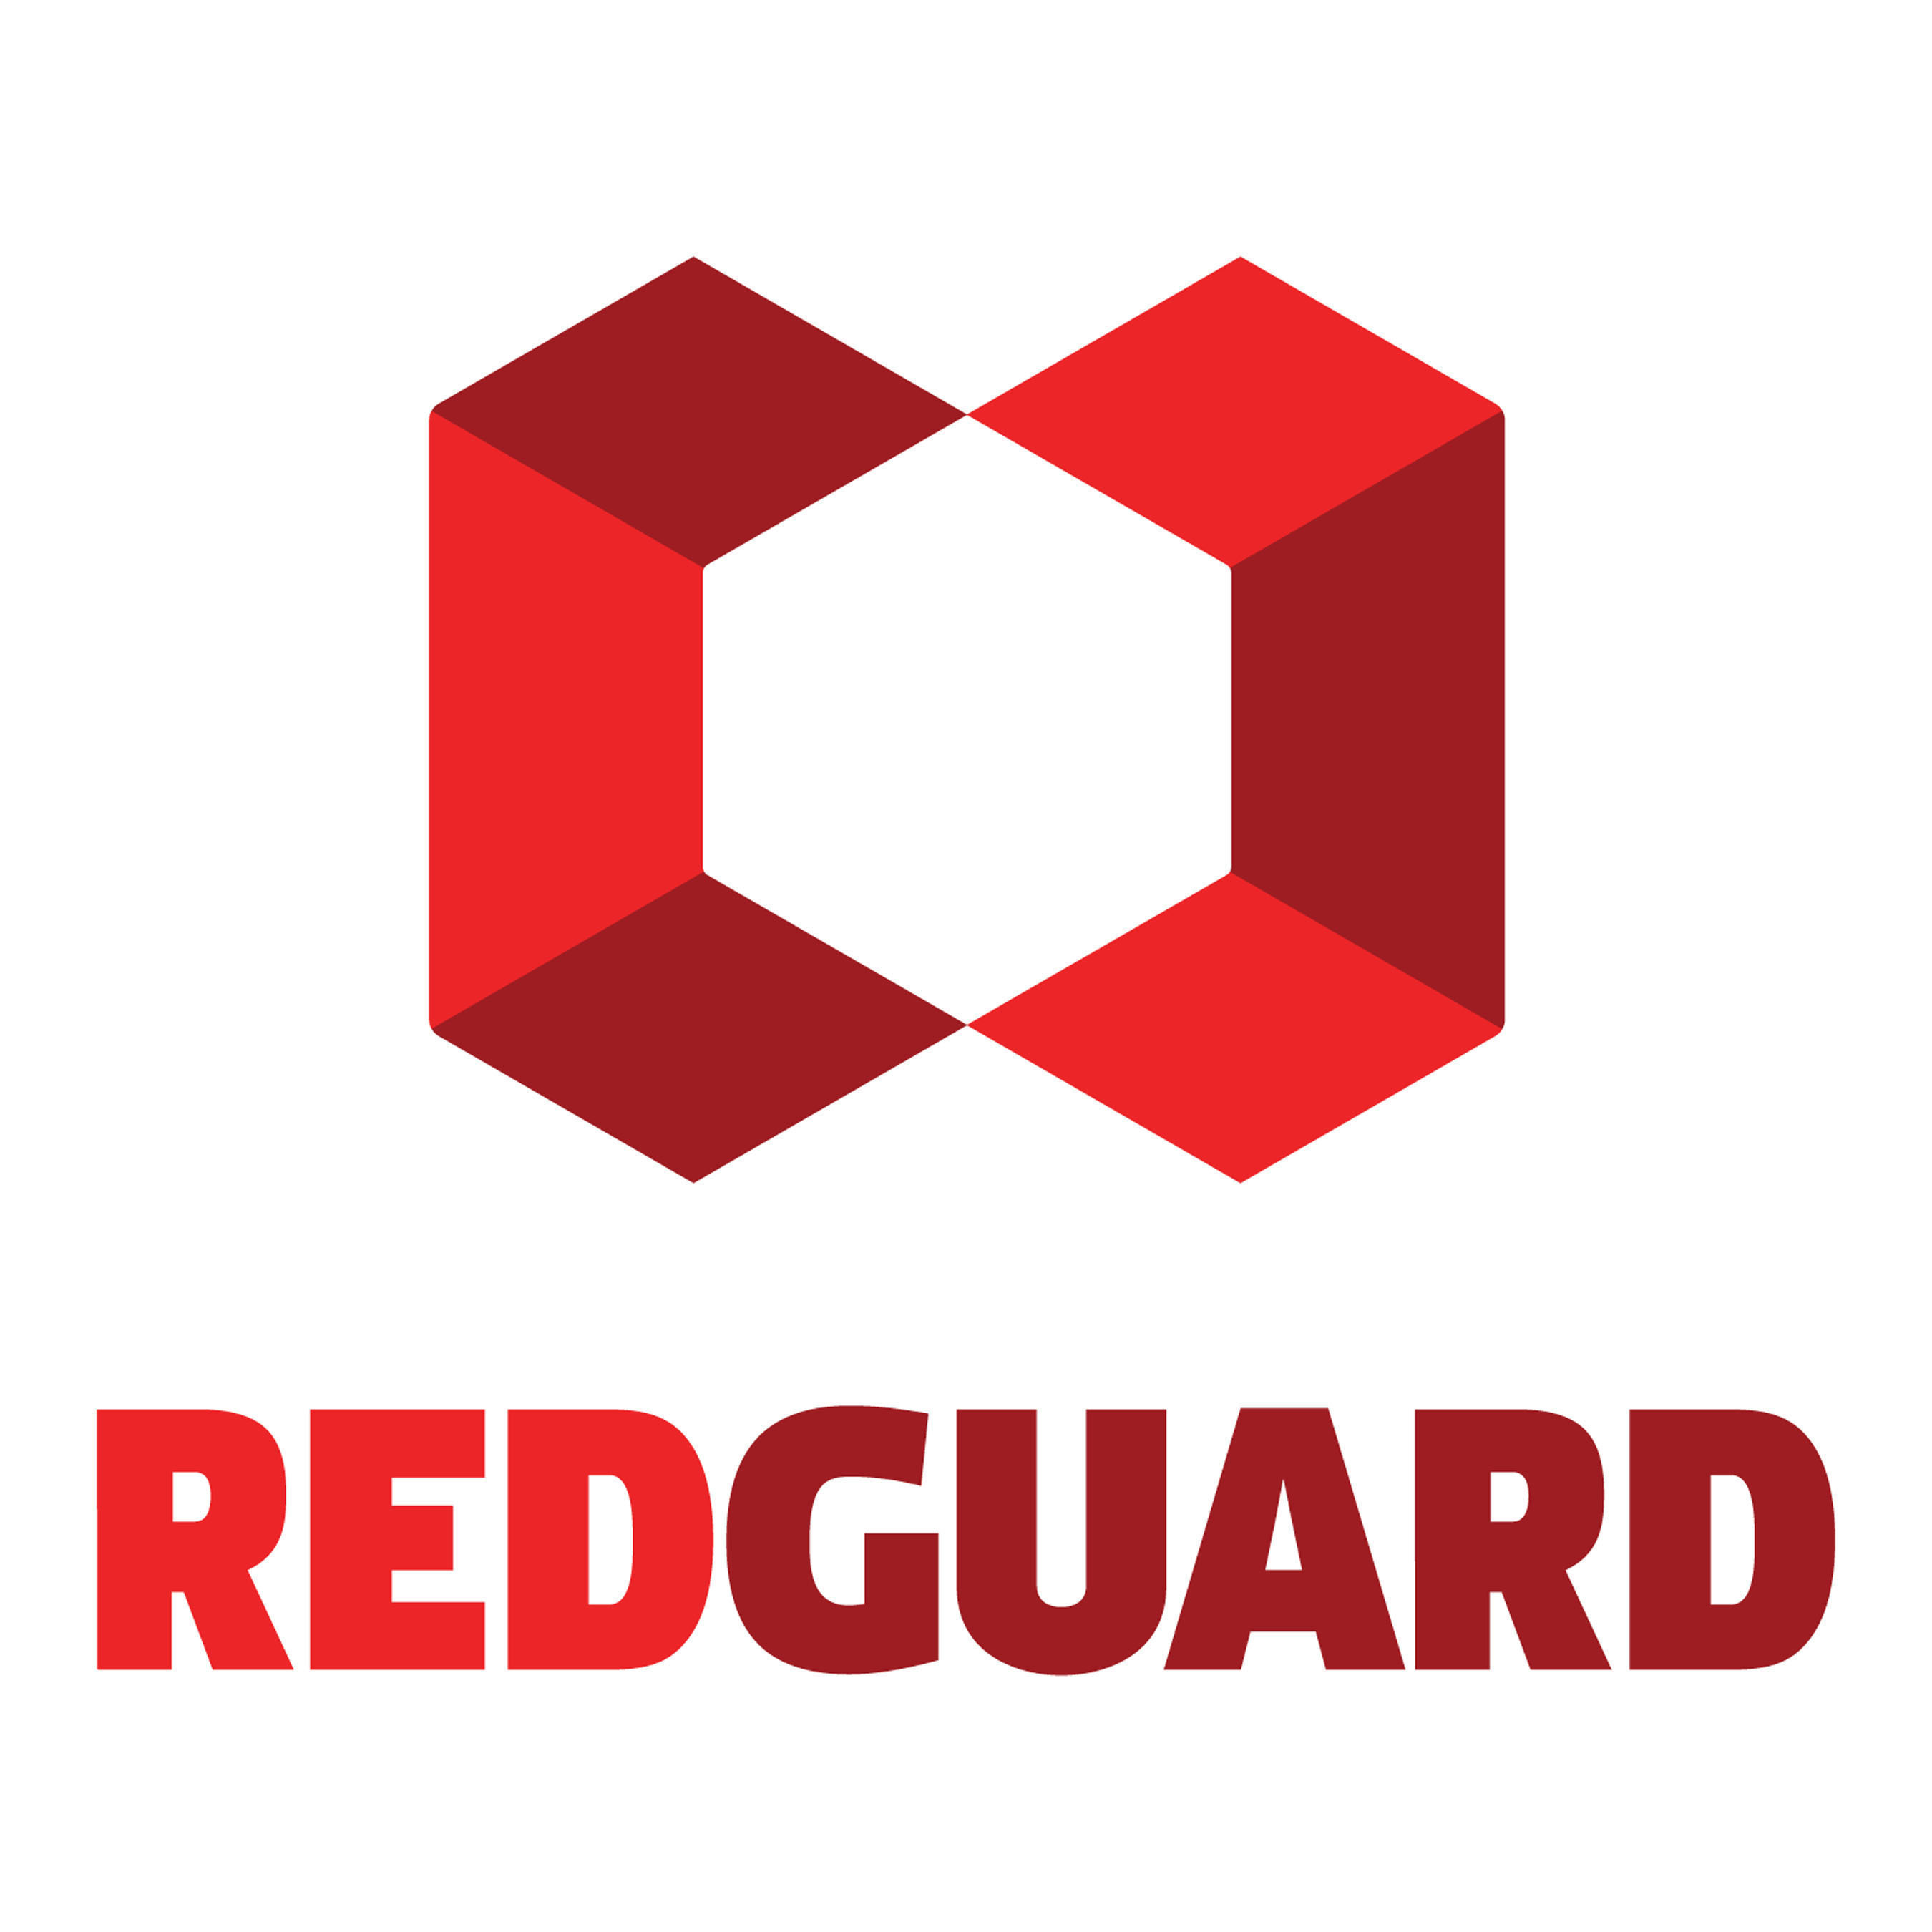 RedGuard is the world's premier producer of successfully tested blast-resistant buildings. Learn more at ...